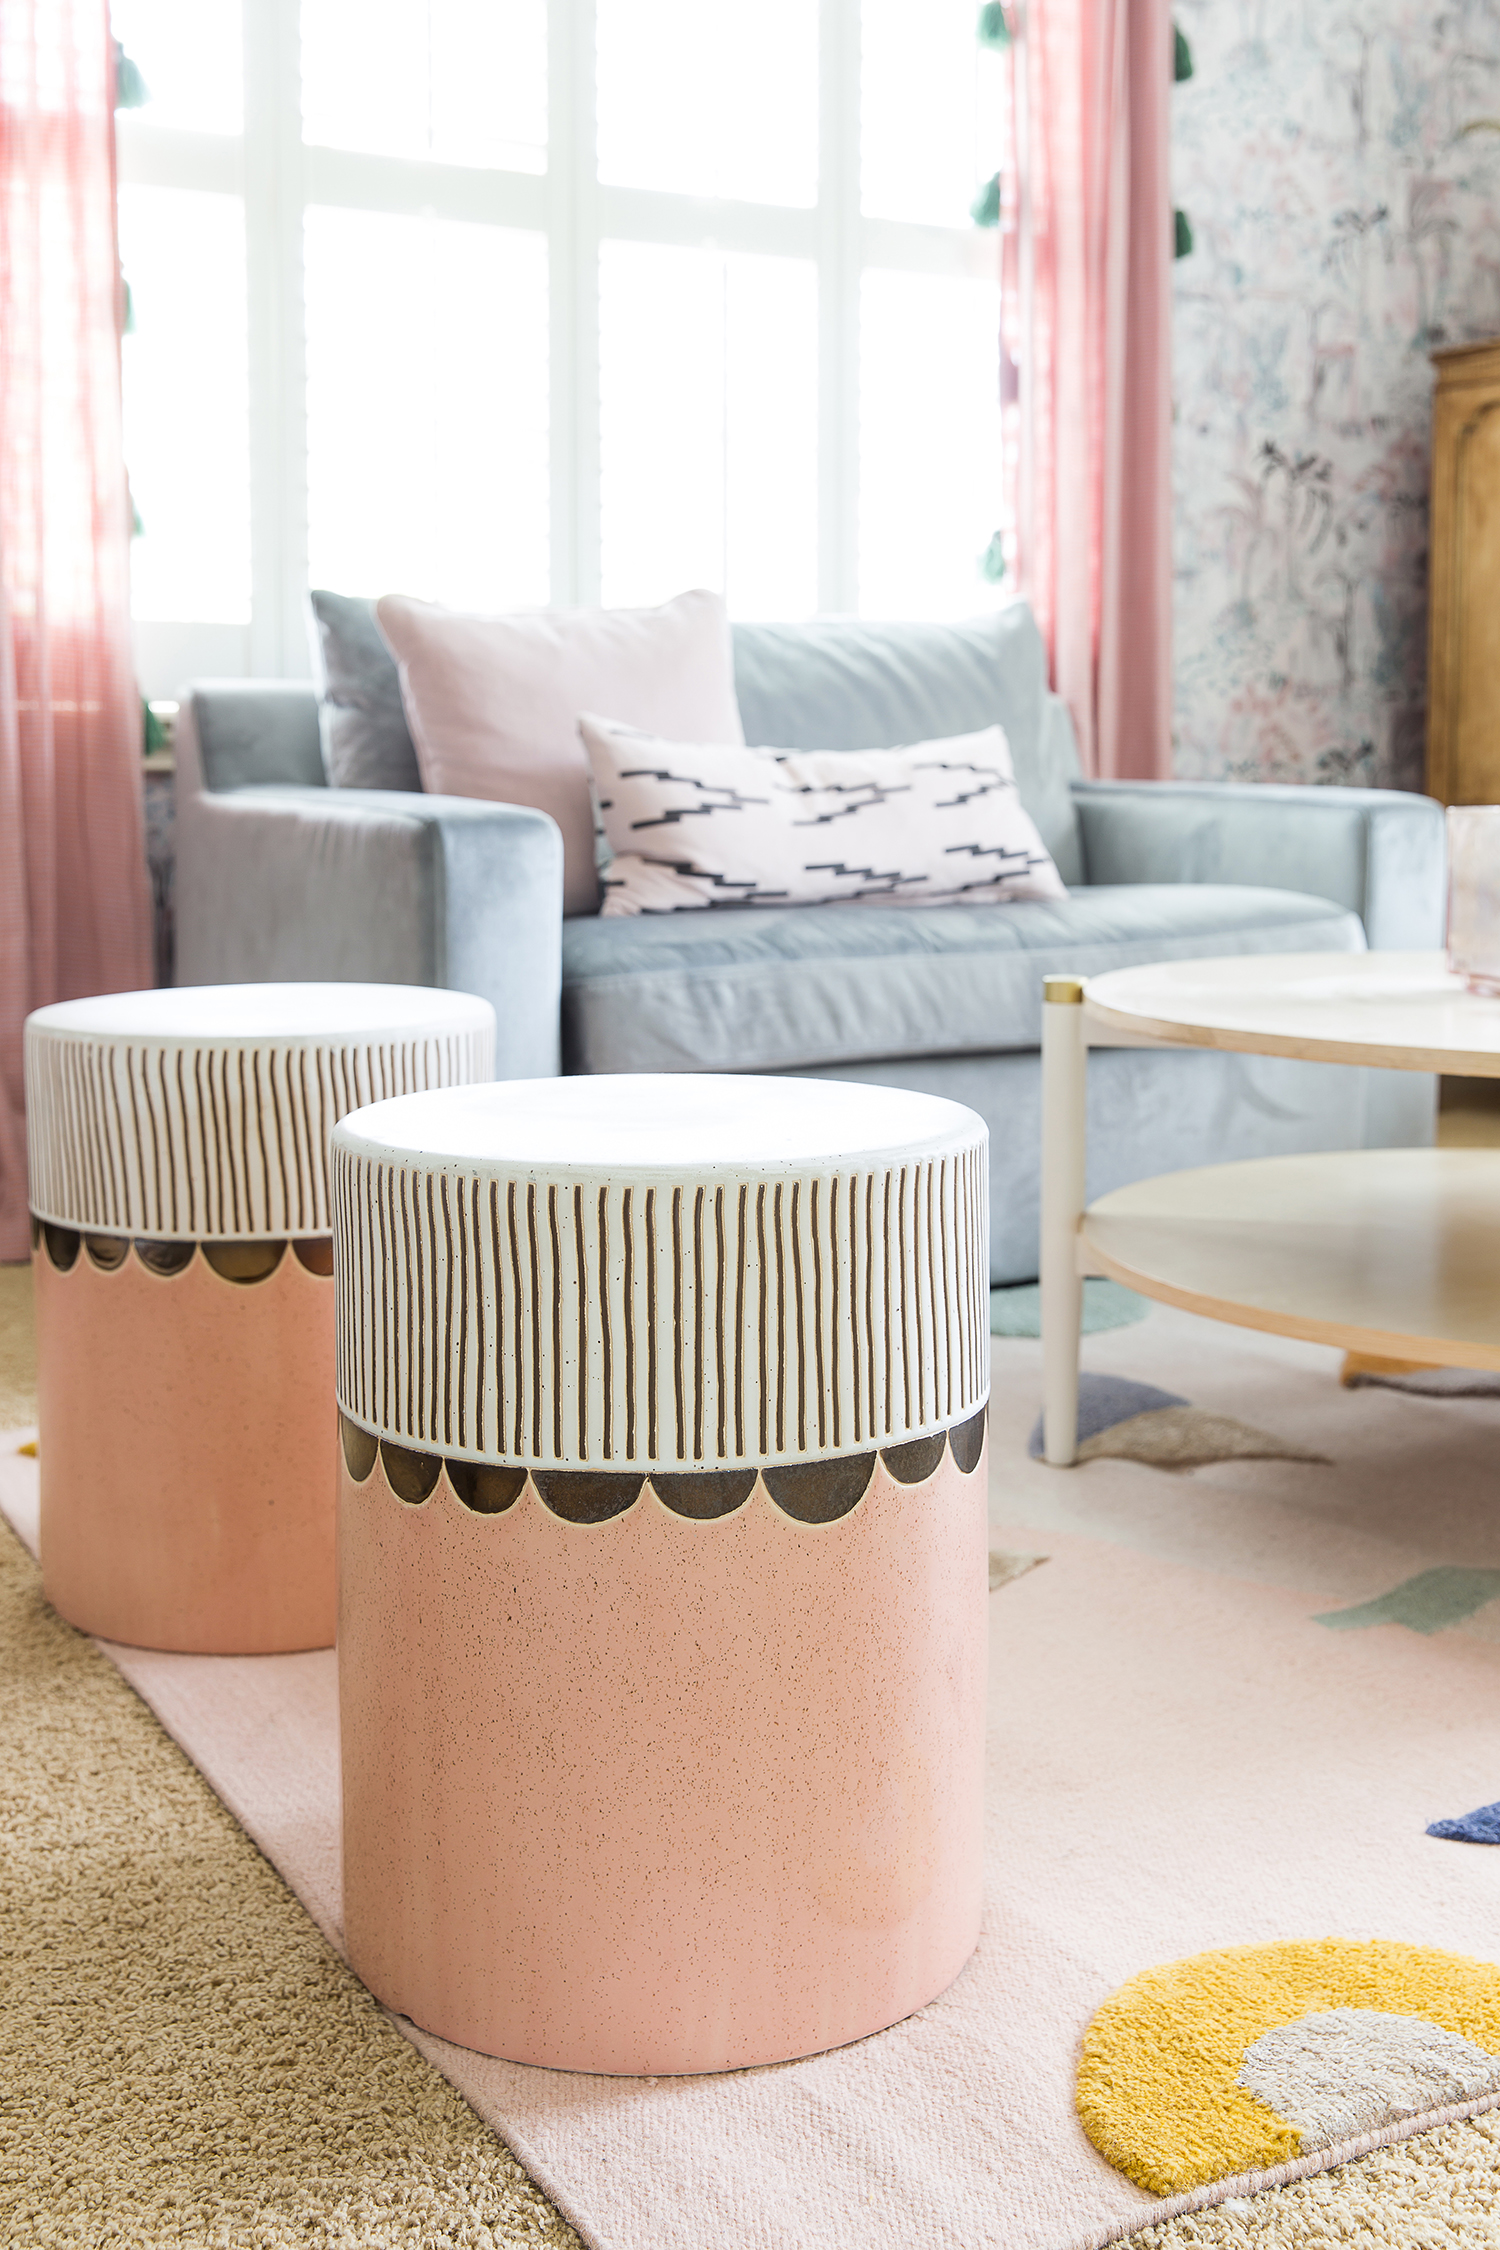 blue-gray couch and pink stools in bedroom